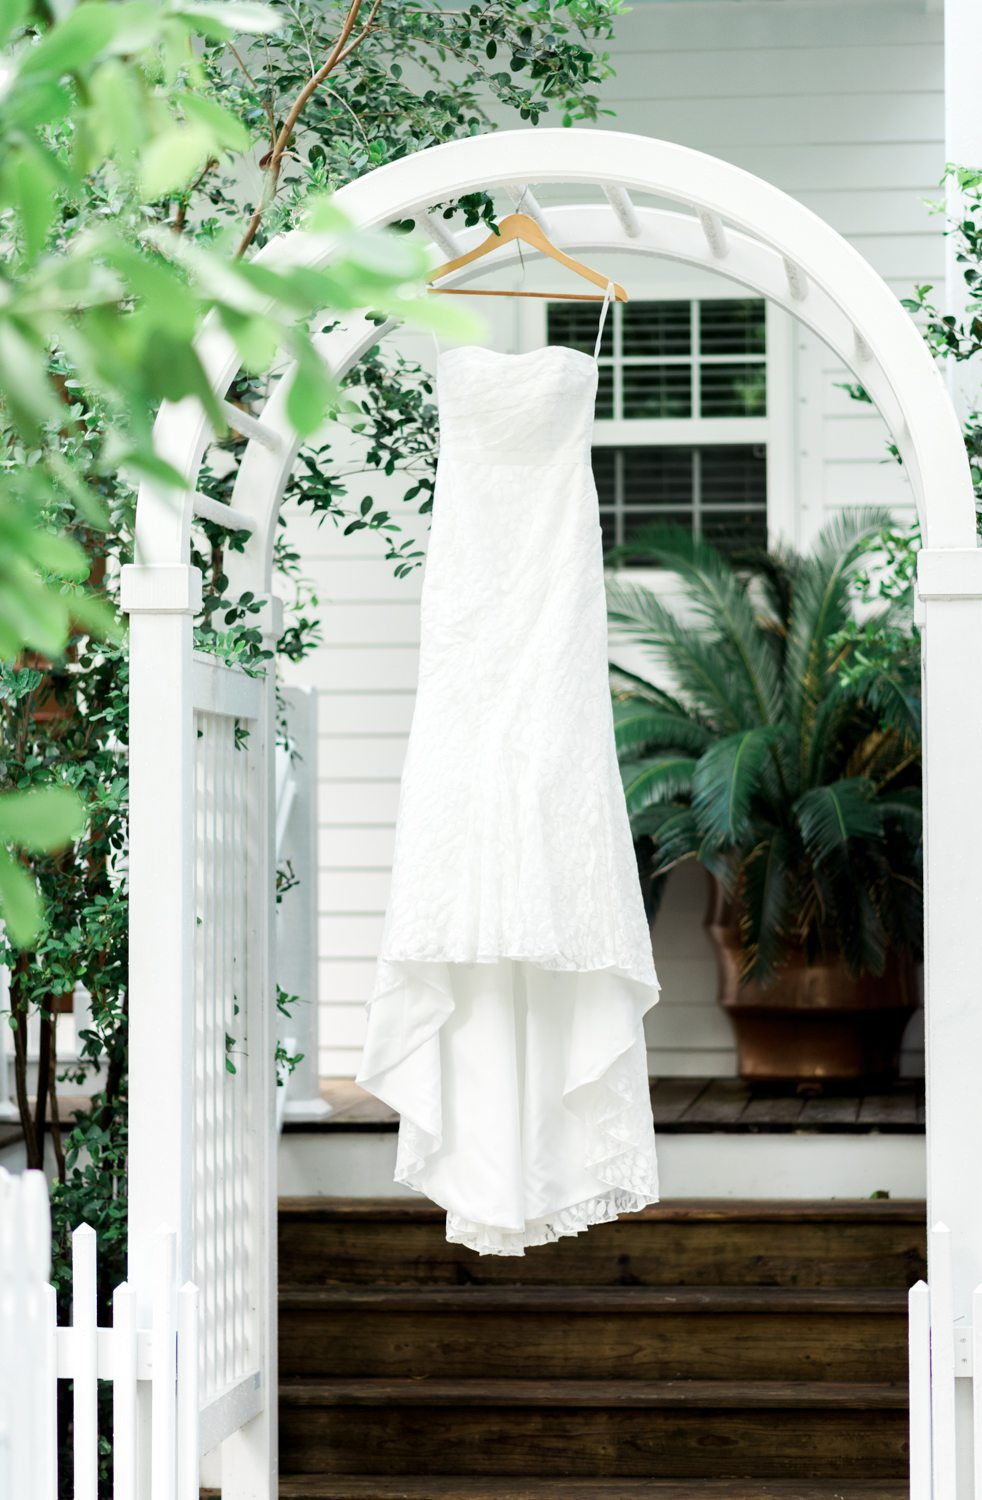 Tracey Joe Key West Garden Club 1 - Tracey & Joe | Key West Wedding Photographer | Key West Garden Club